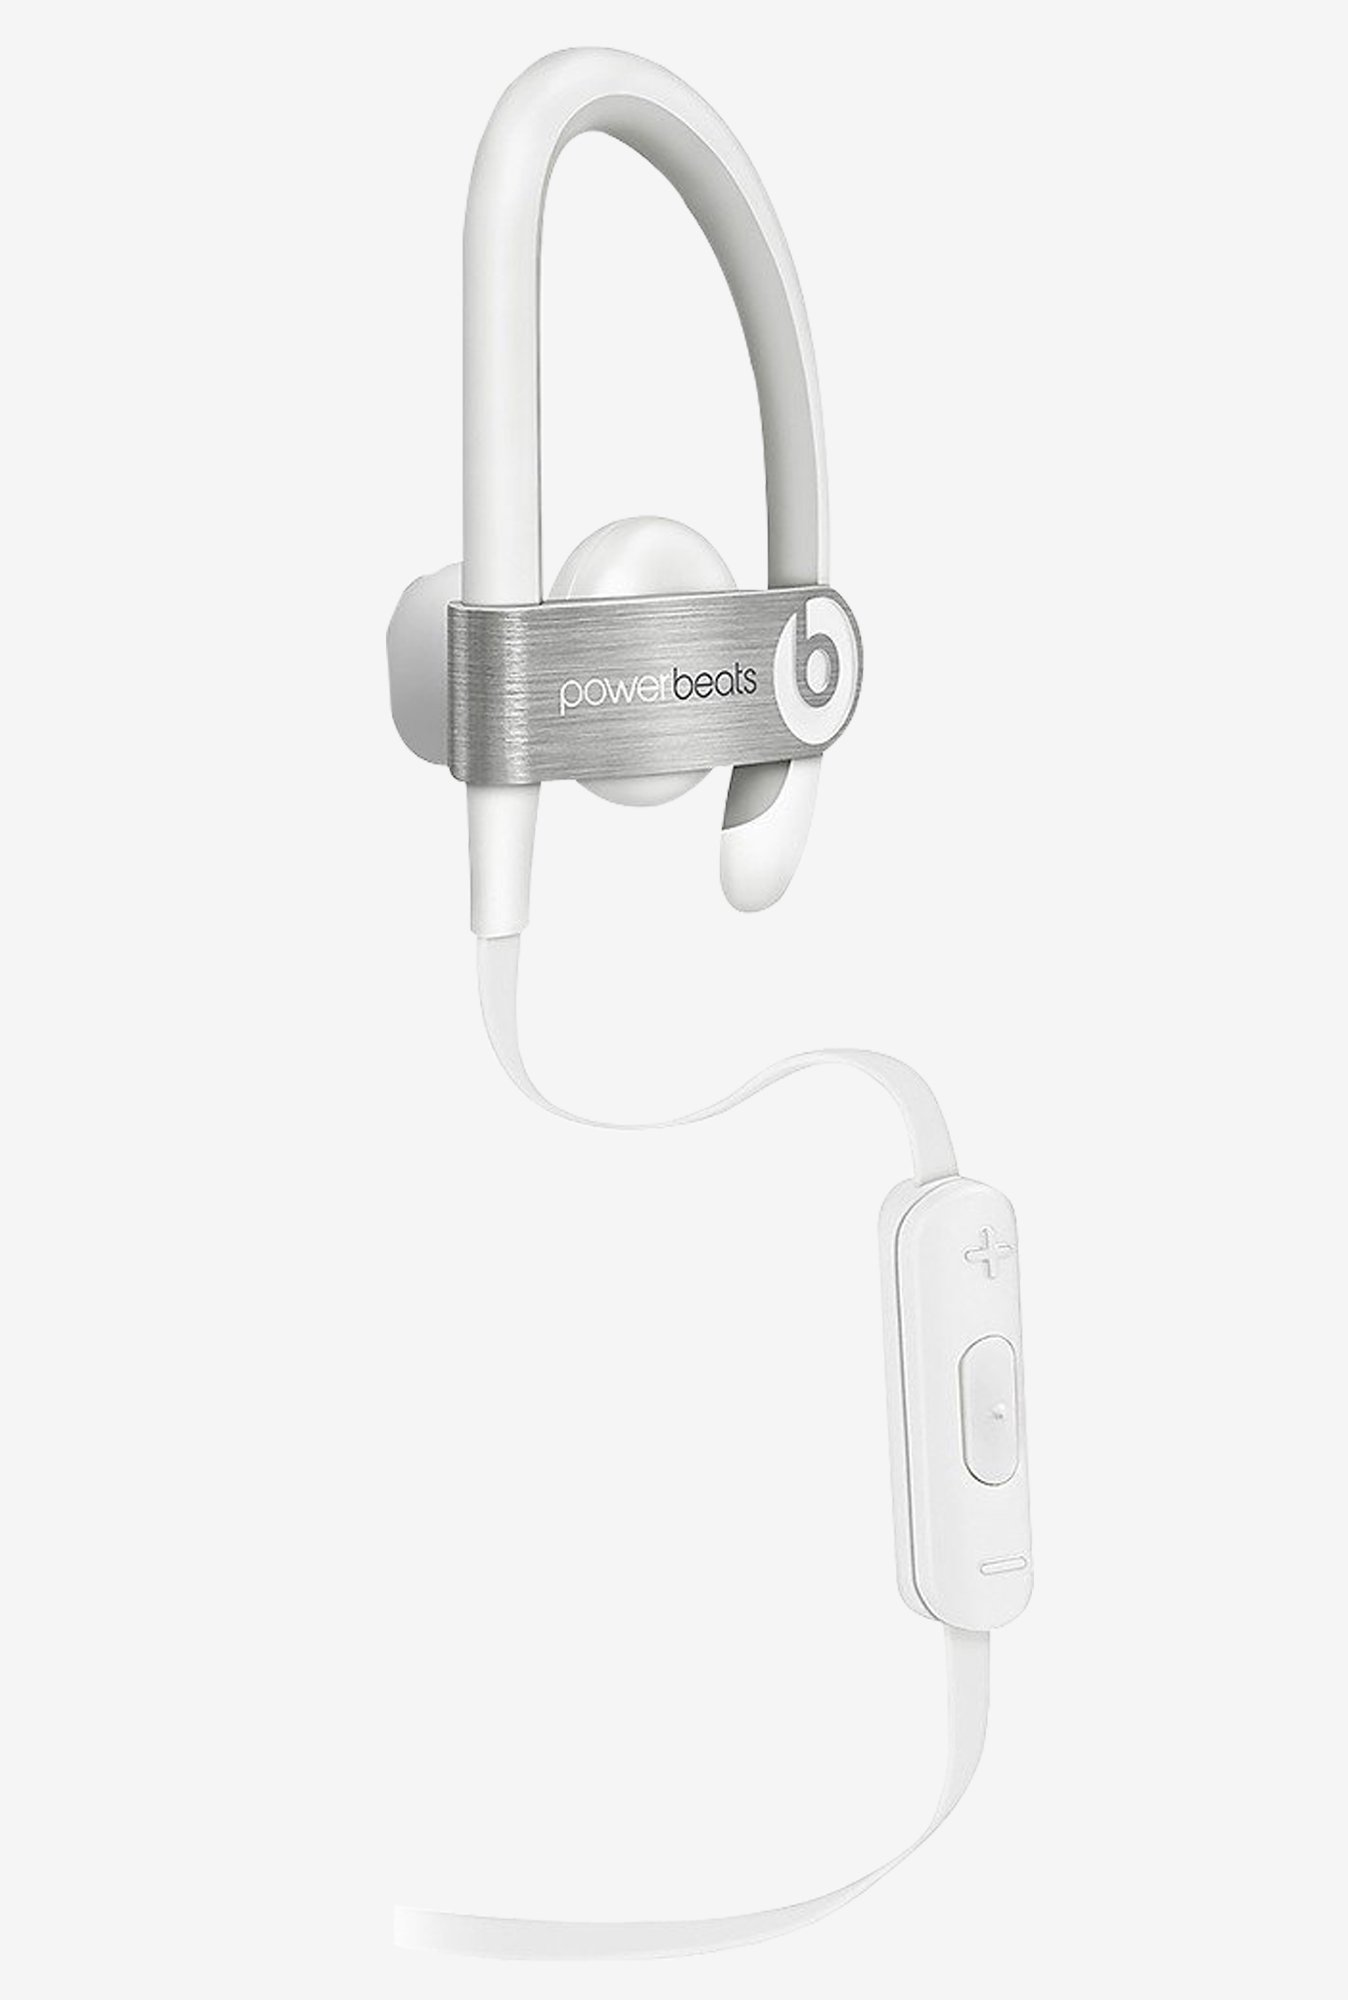 Powerbeats 2 WIRED 900-00184-01 In the Ear Headphone (White)